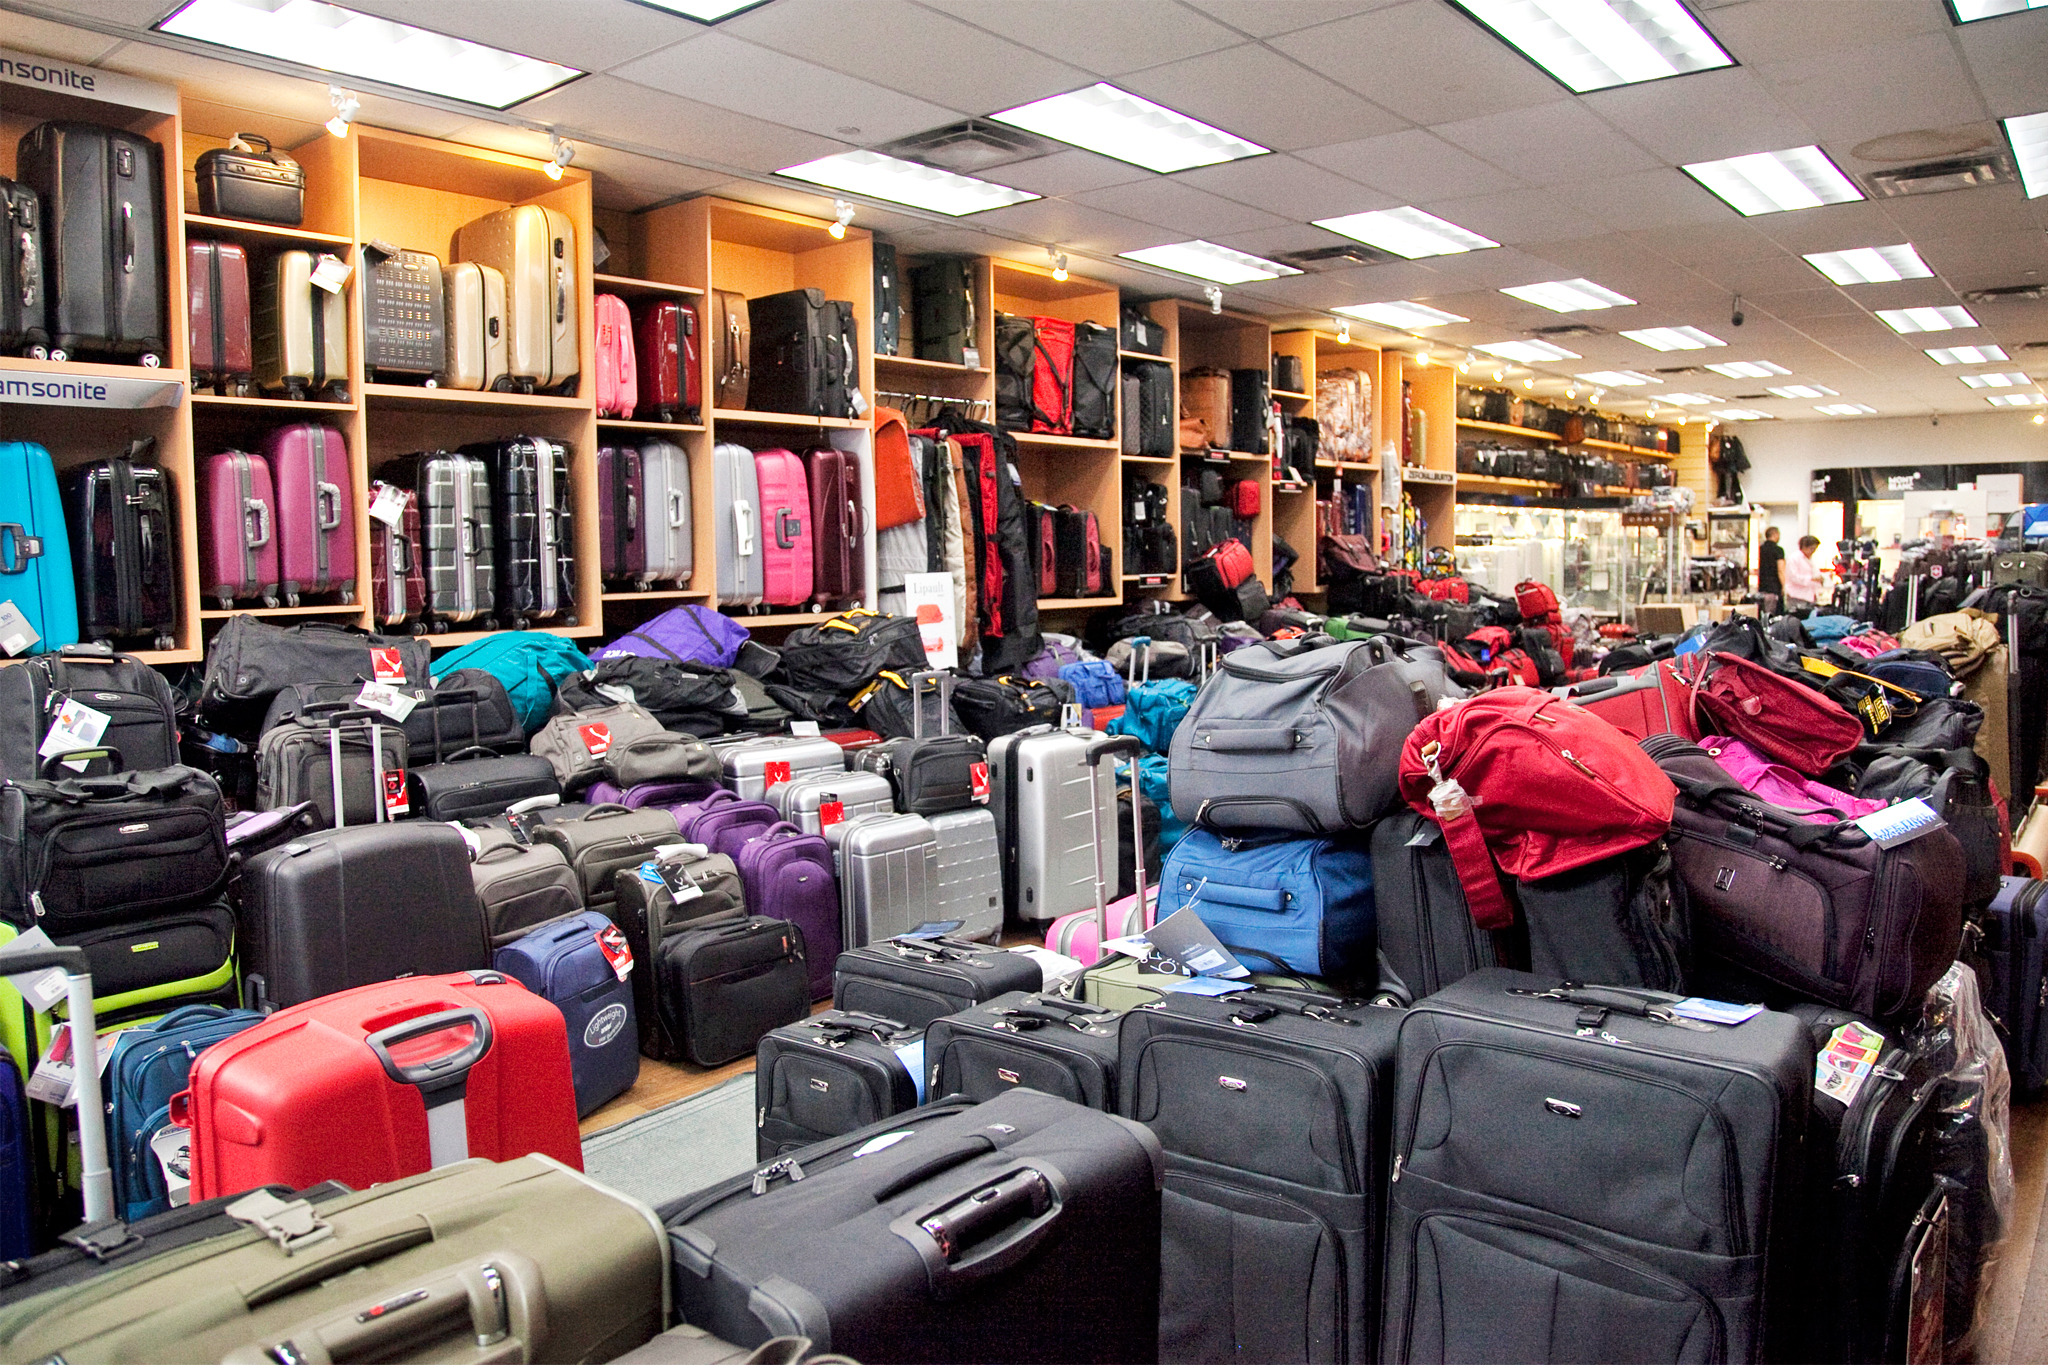 Best Deals on High Quality and Affordable Luggage